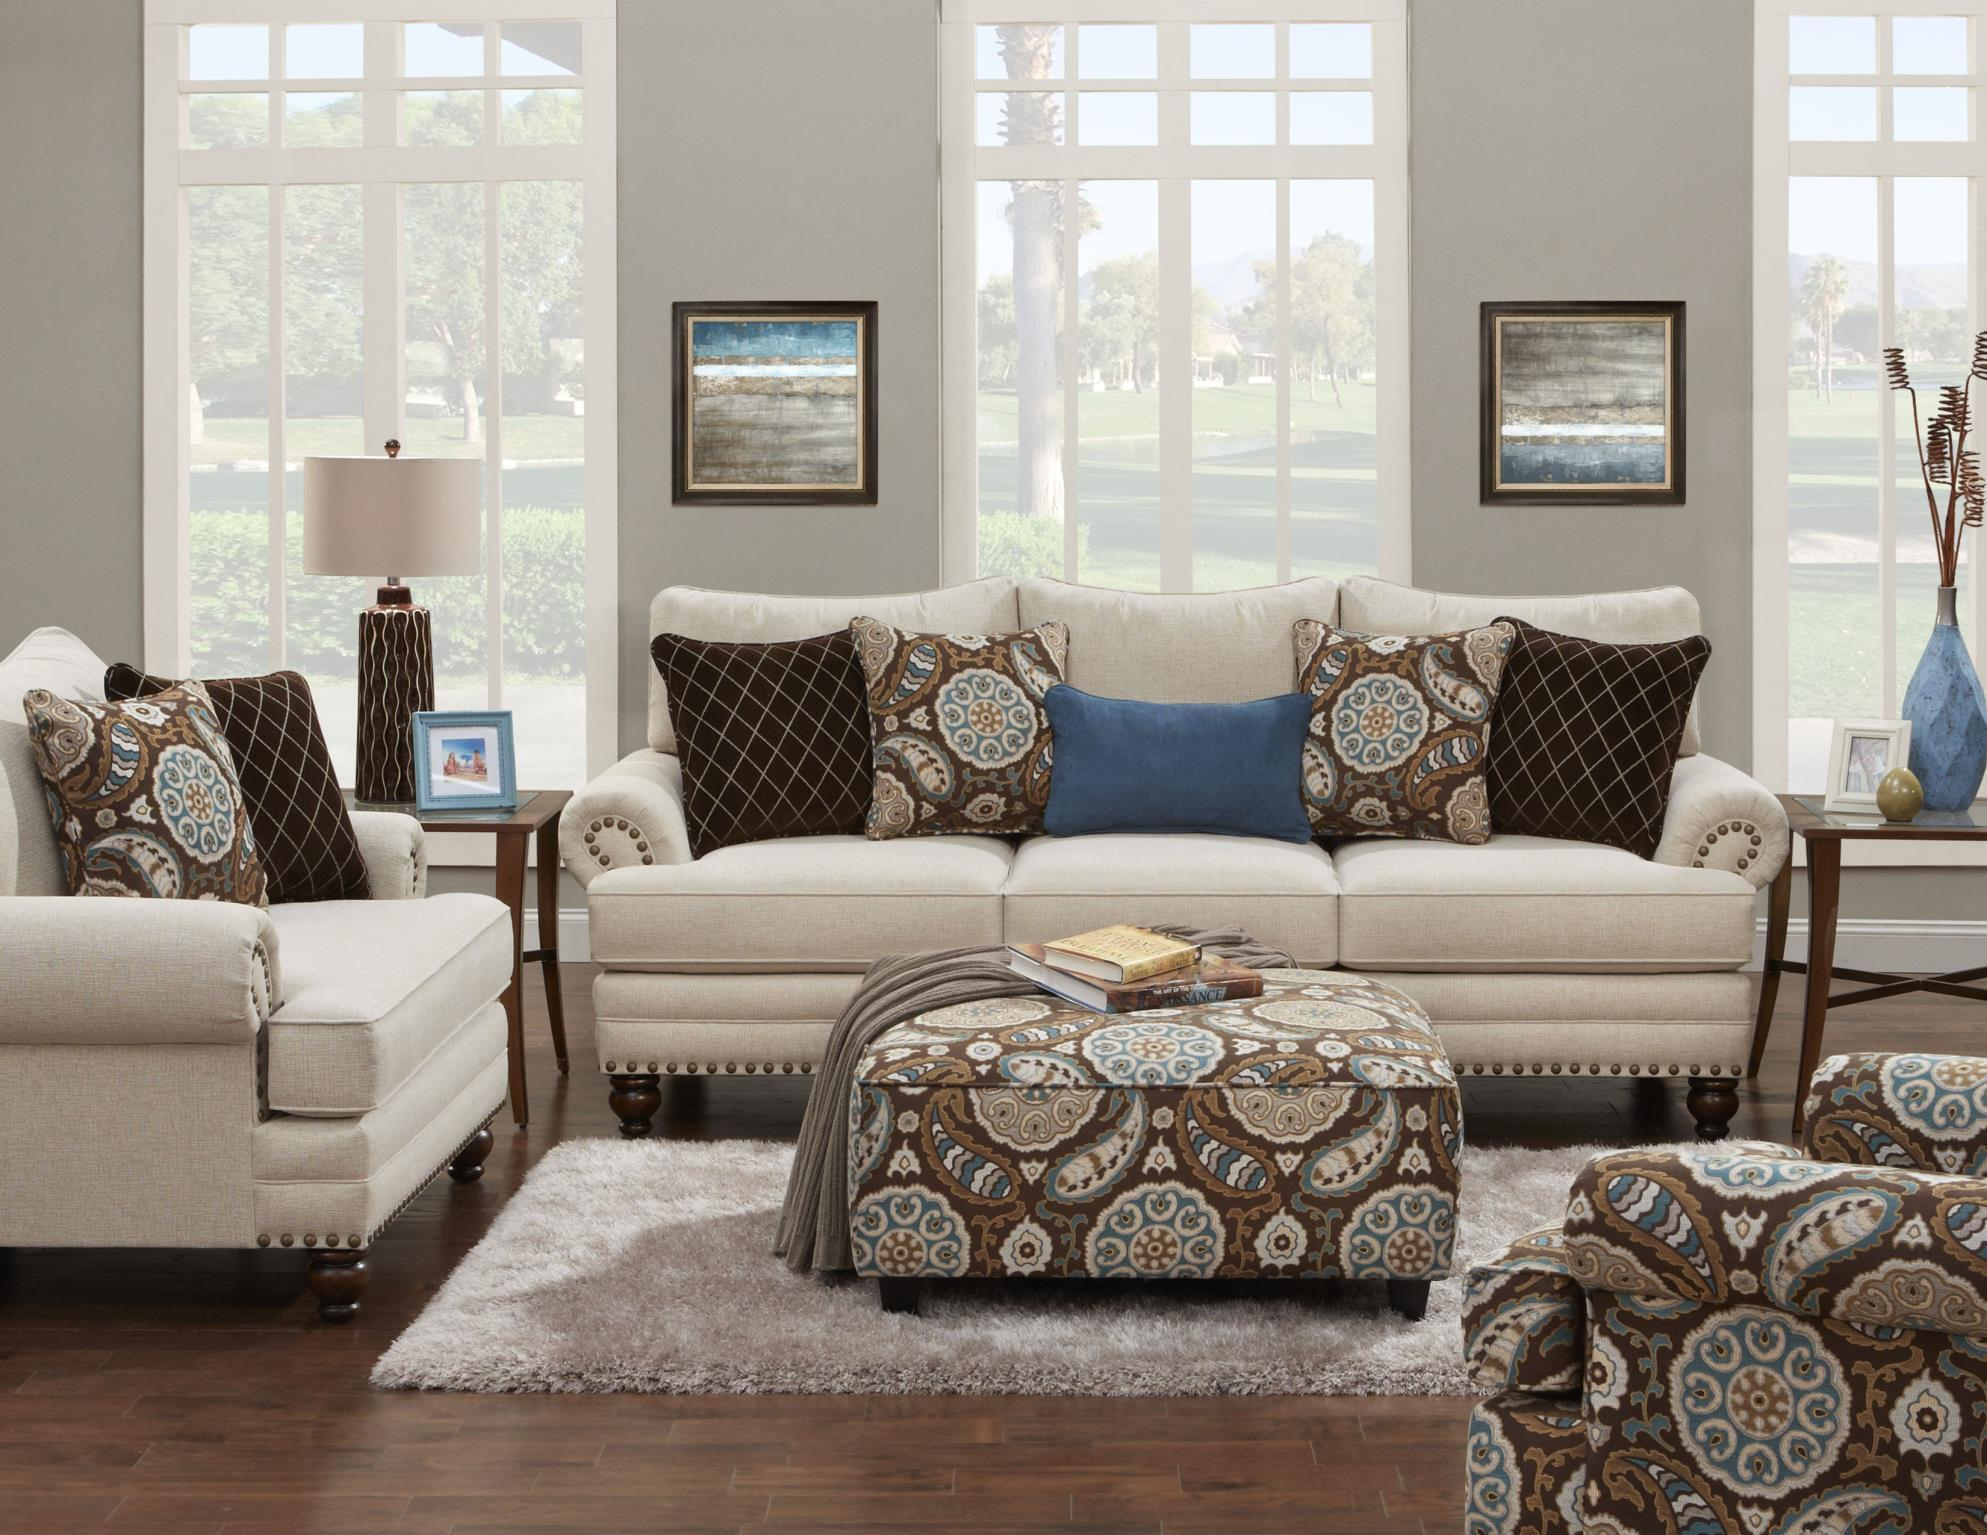 Fusion Furniture 2820 Stationary Living Room Group  Royal Furniture  Stationary Living Room Groups